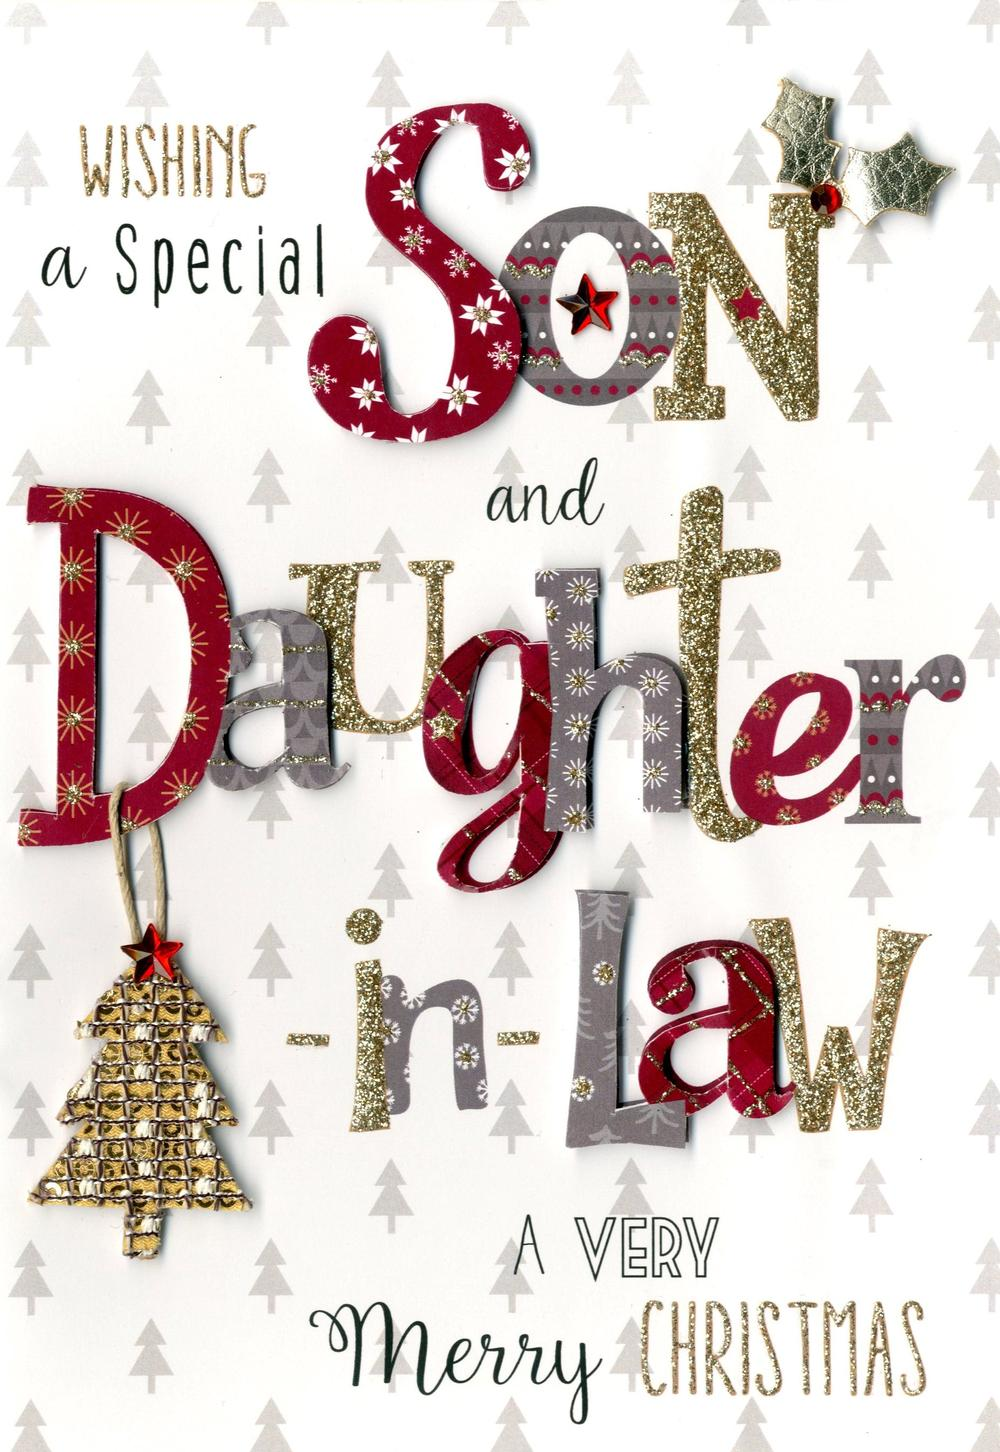 Son & Daughter-In-Law Embellished Christmas Card